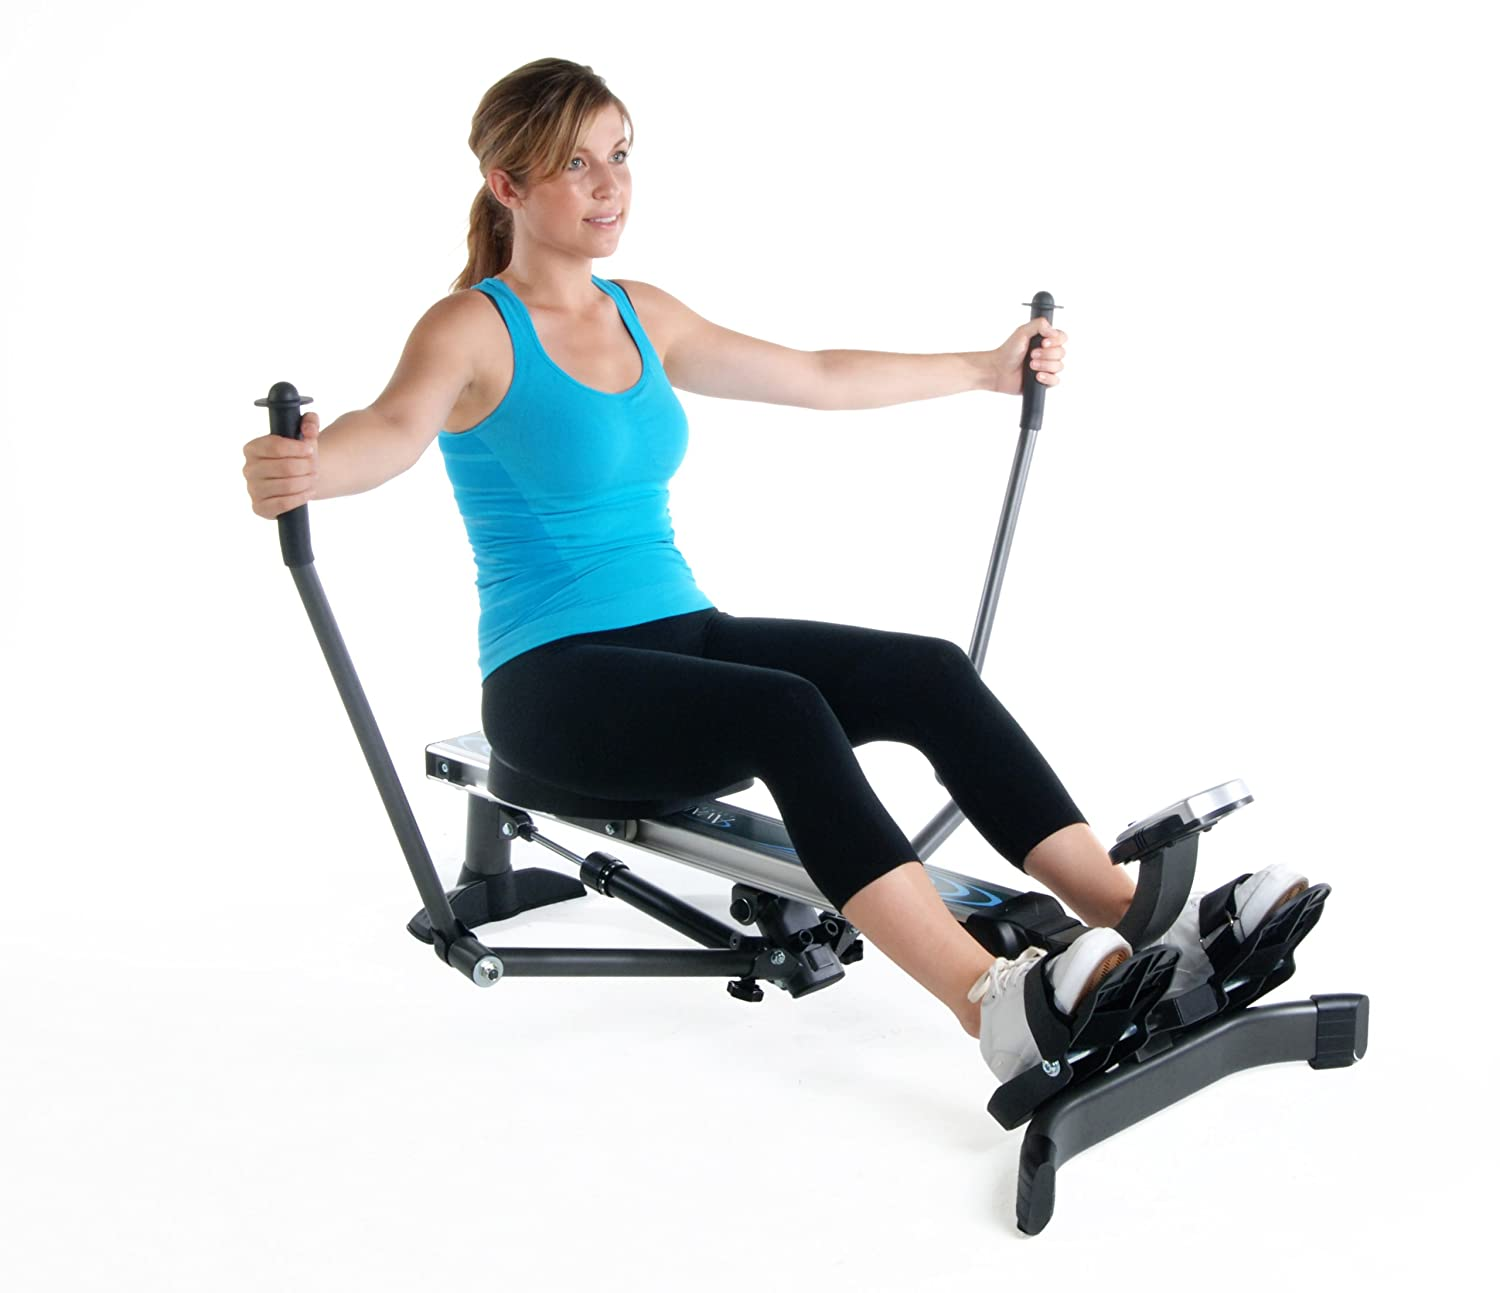 Exercise on a rowing machine